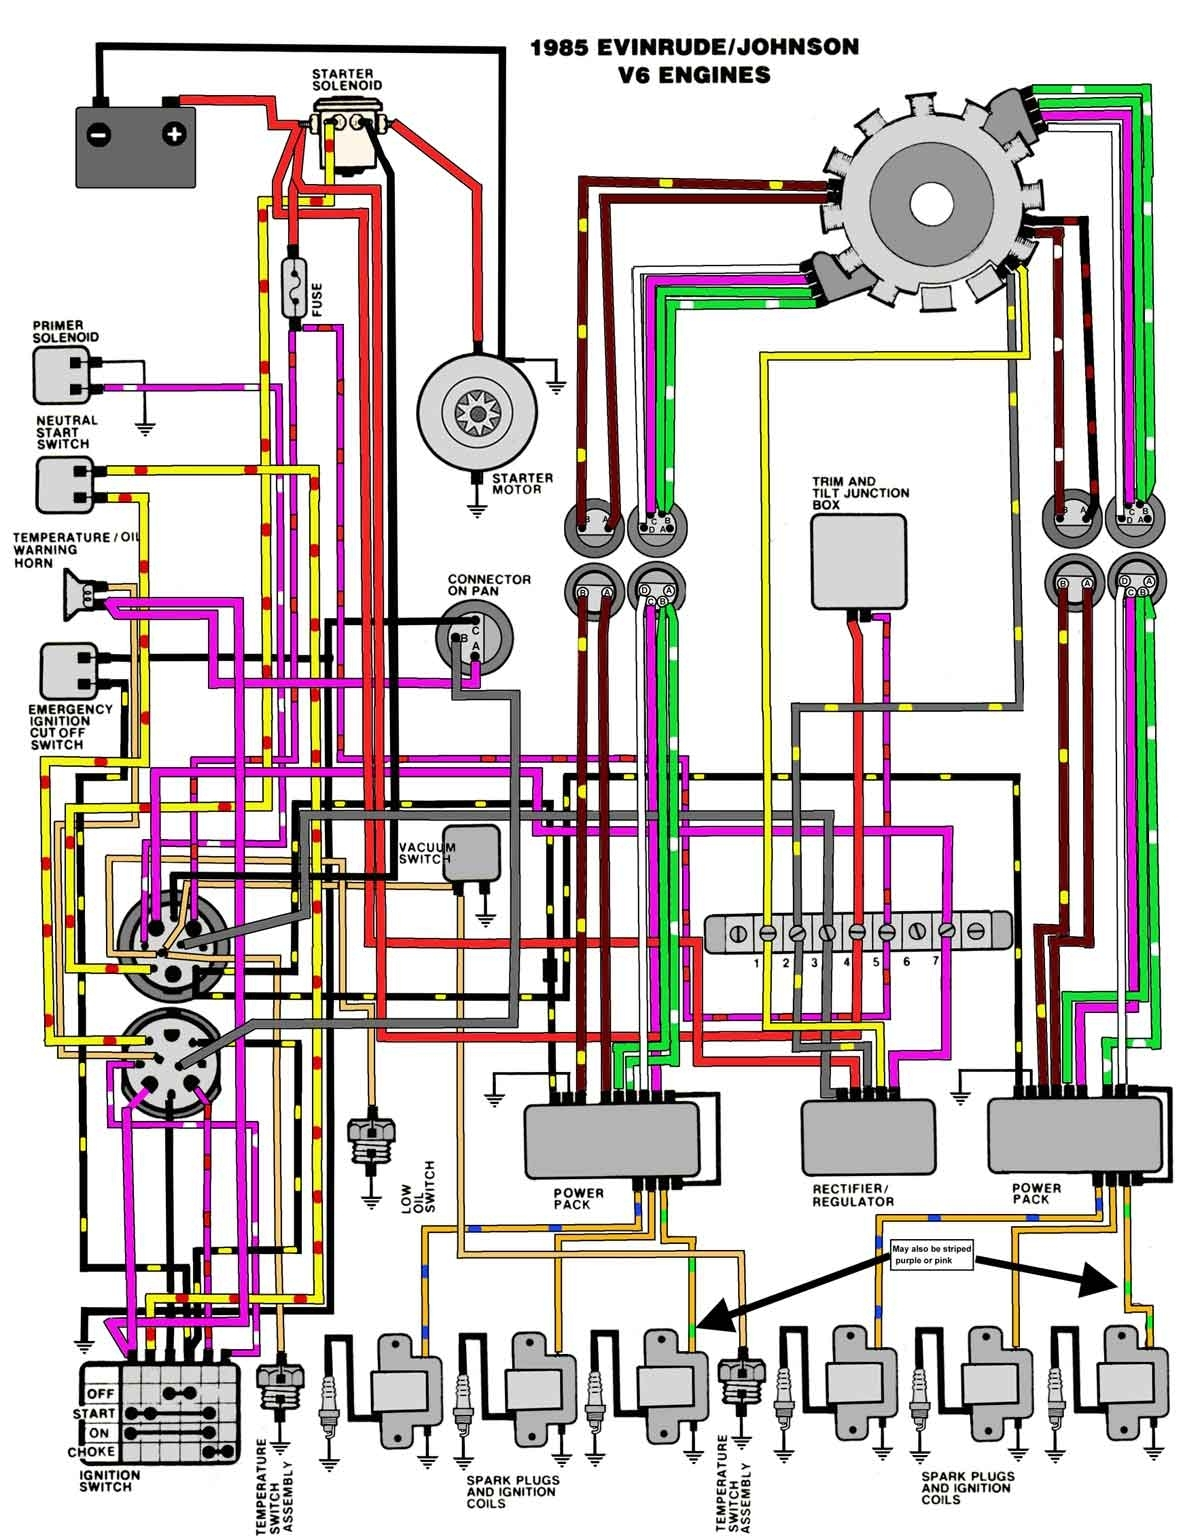 [DIAGRAM_5UK]  505 1972 Johnson 100 Hp Wiring Diagram Free Picture | Wiring Library | Free Download Gsr Series Wiring Diagram |  | Wiring Library